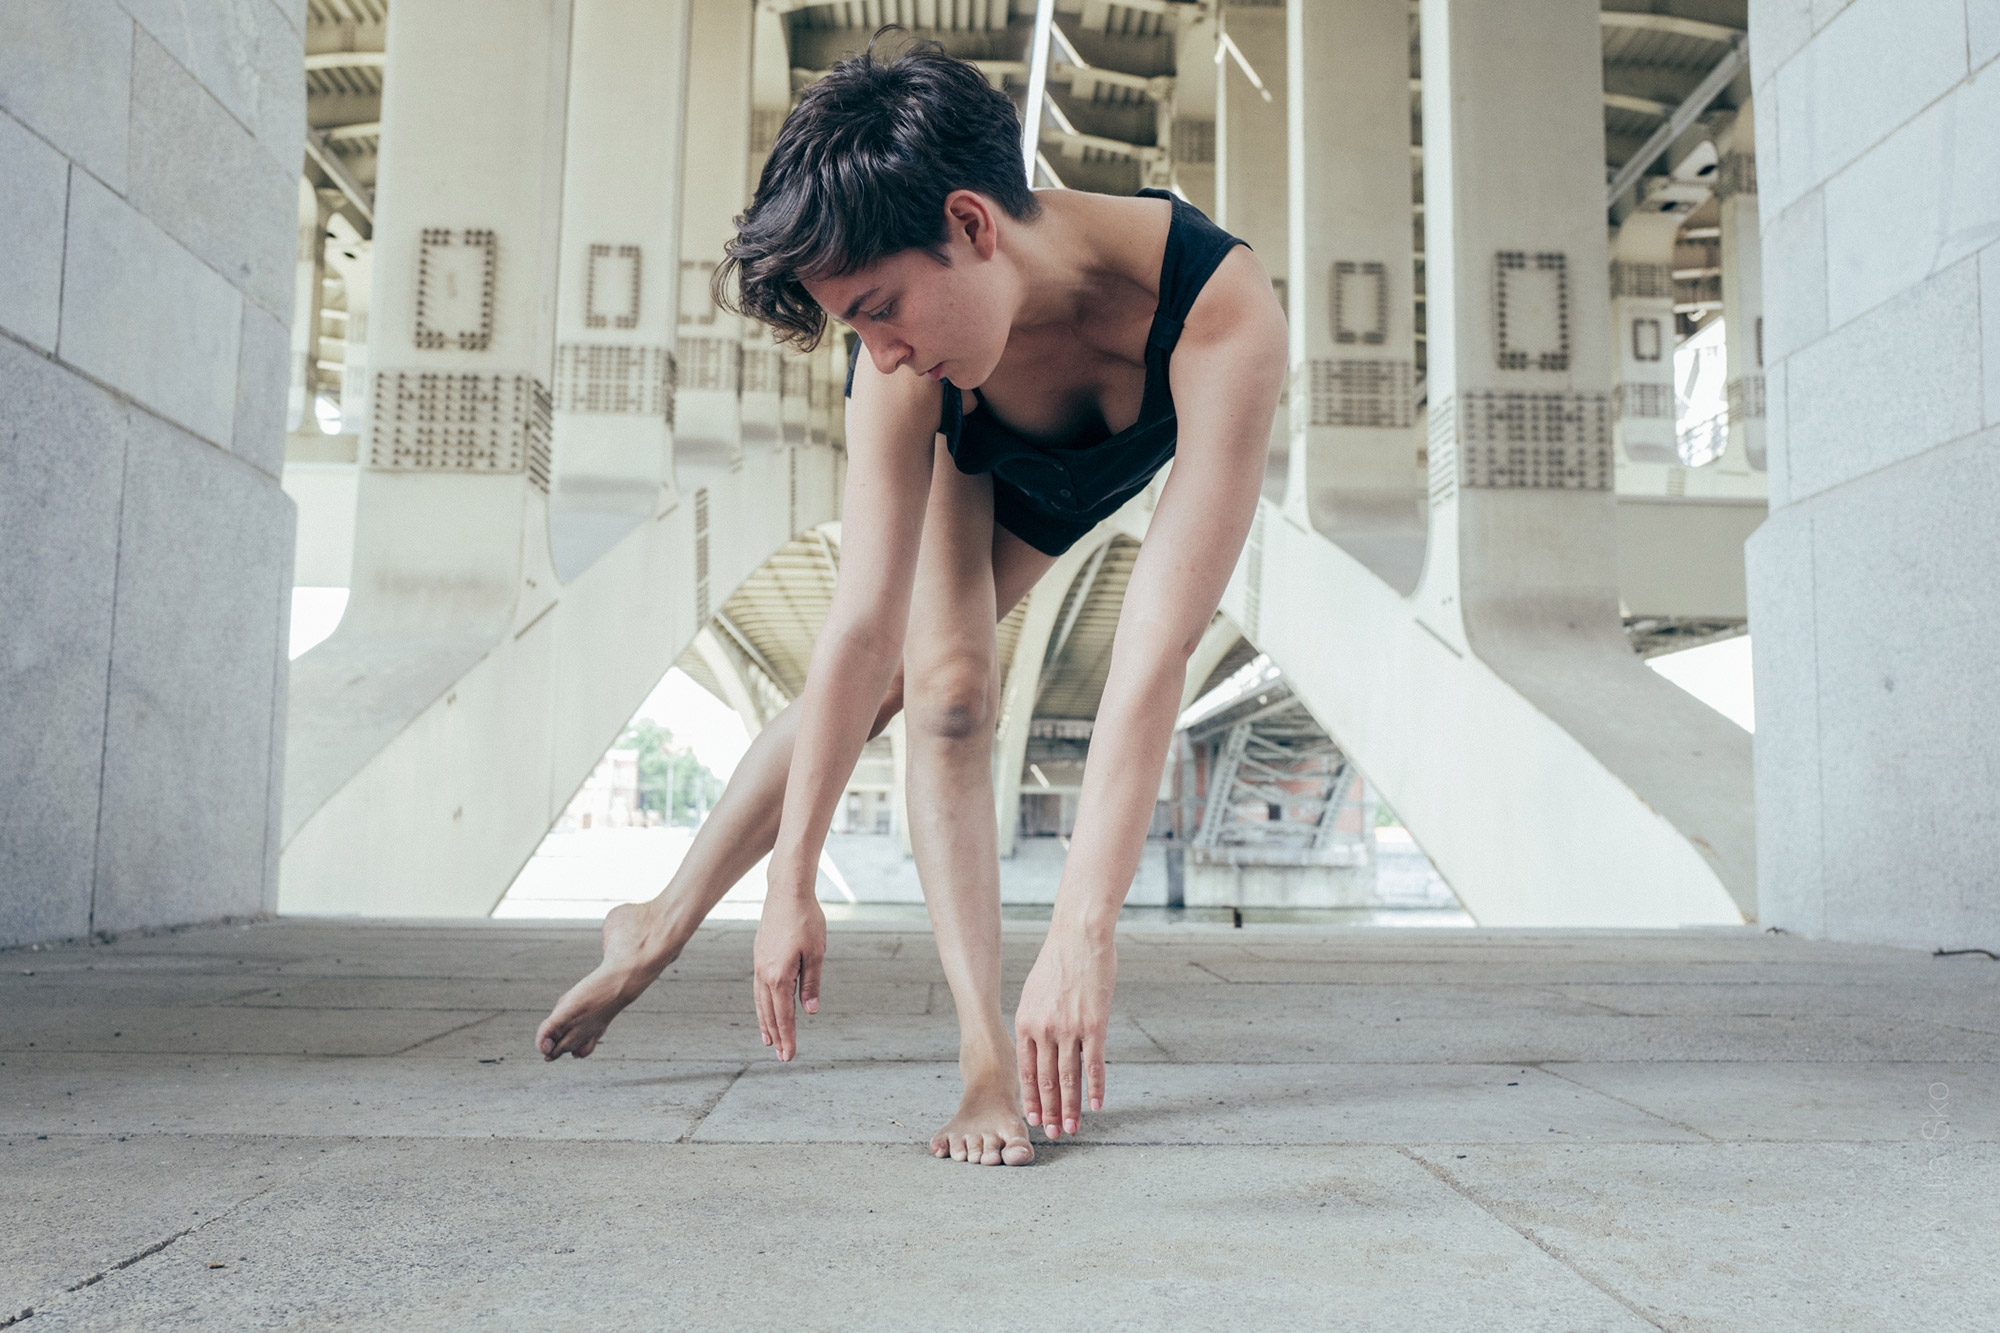 under the bridge: geometry collaboration with Mariam